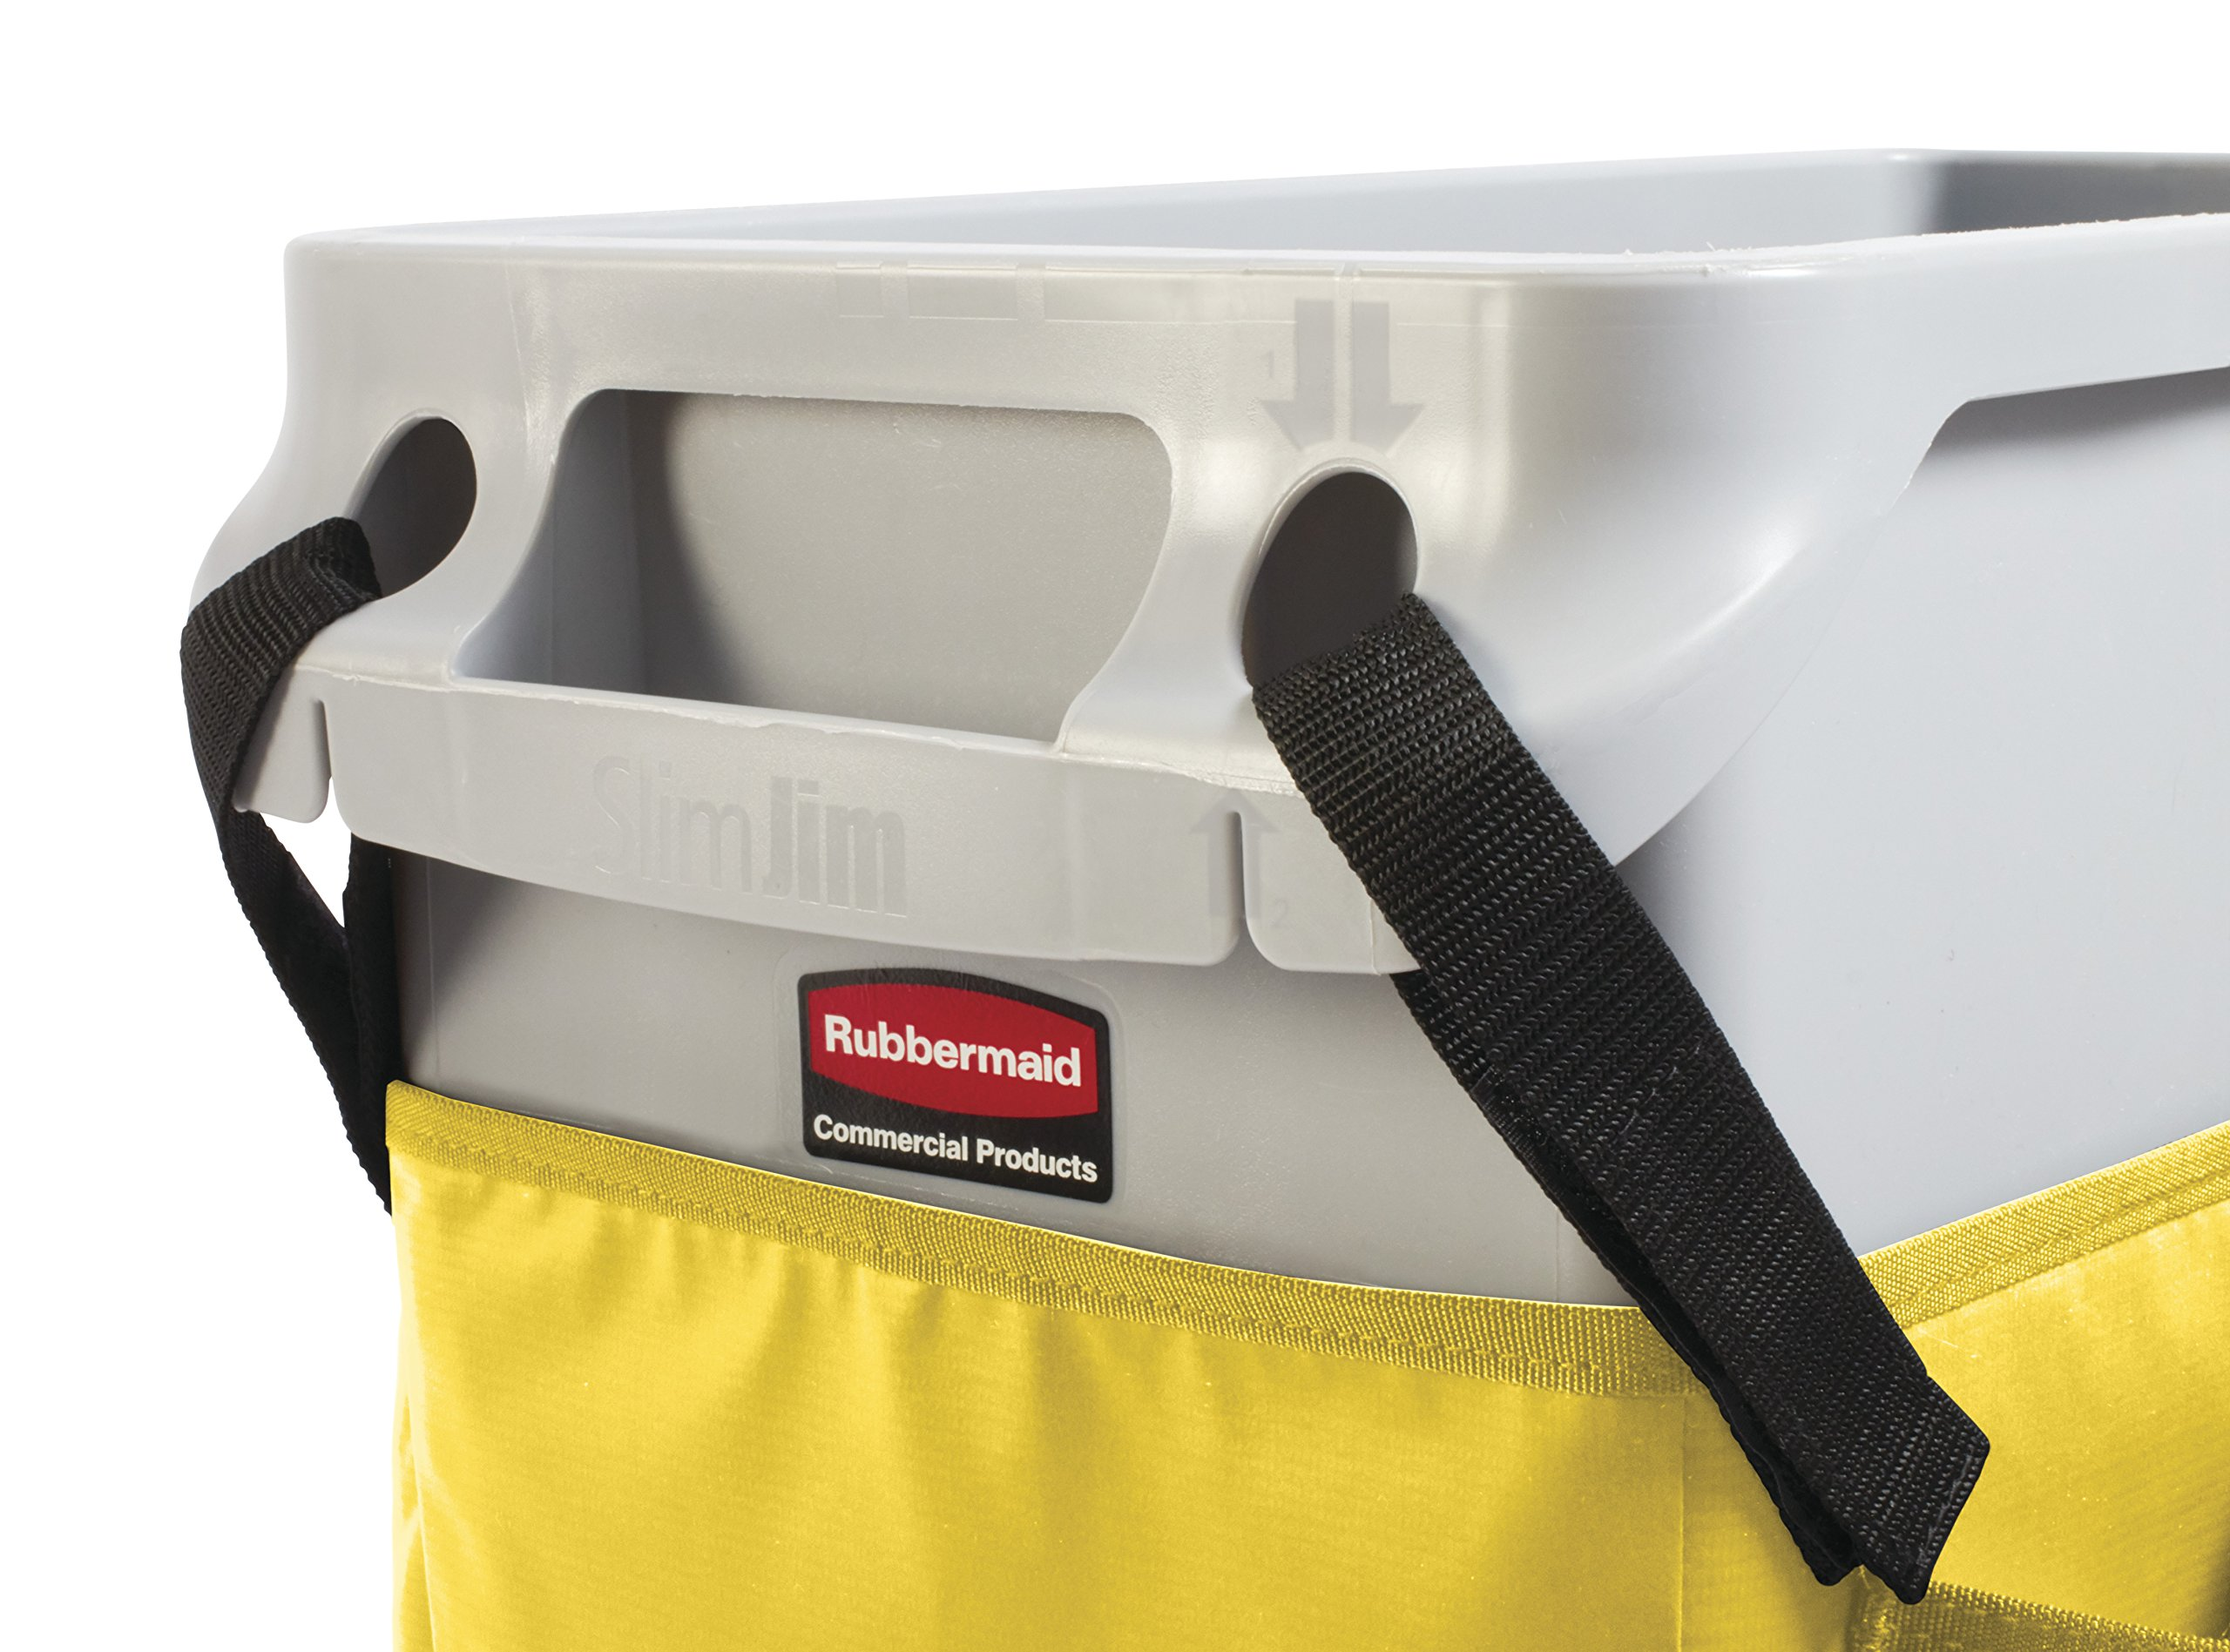 Rubbermaid Commercial Products 2032951 Slim Jim Caddy Bag for 23 gal, Yellow by Rubbermaid Commercial Products (Image #7)